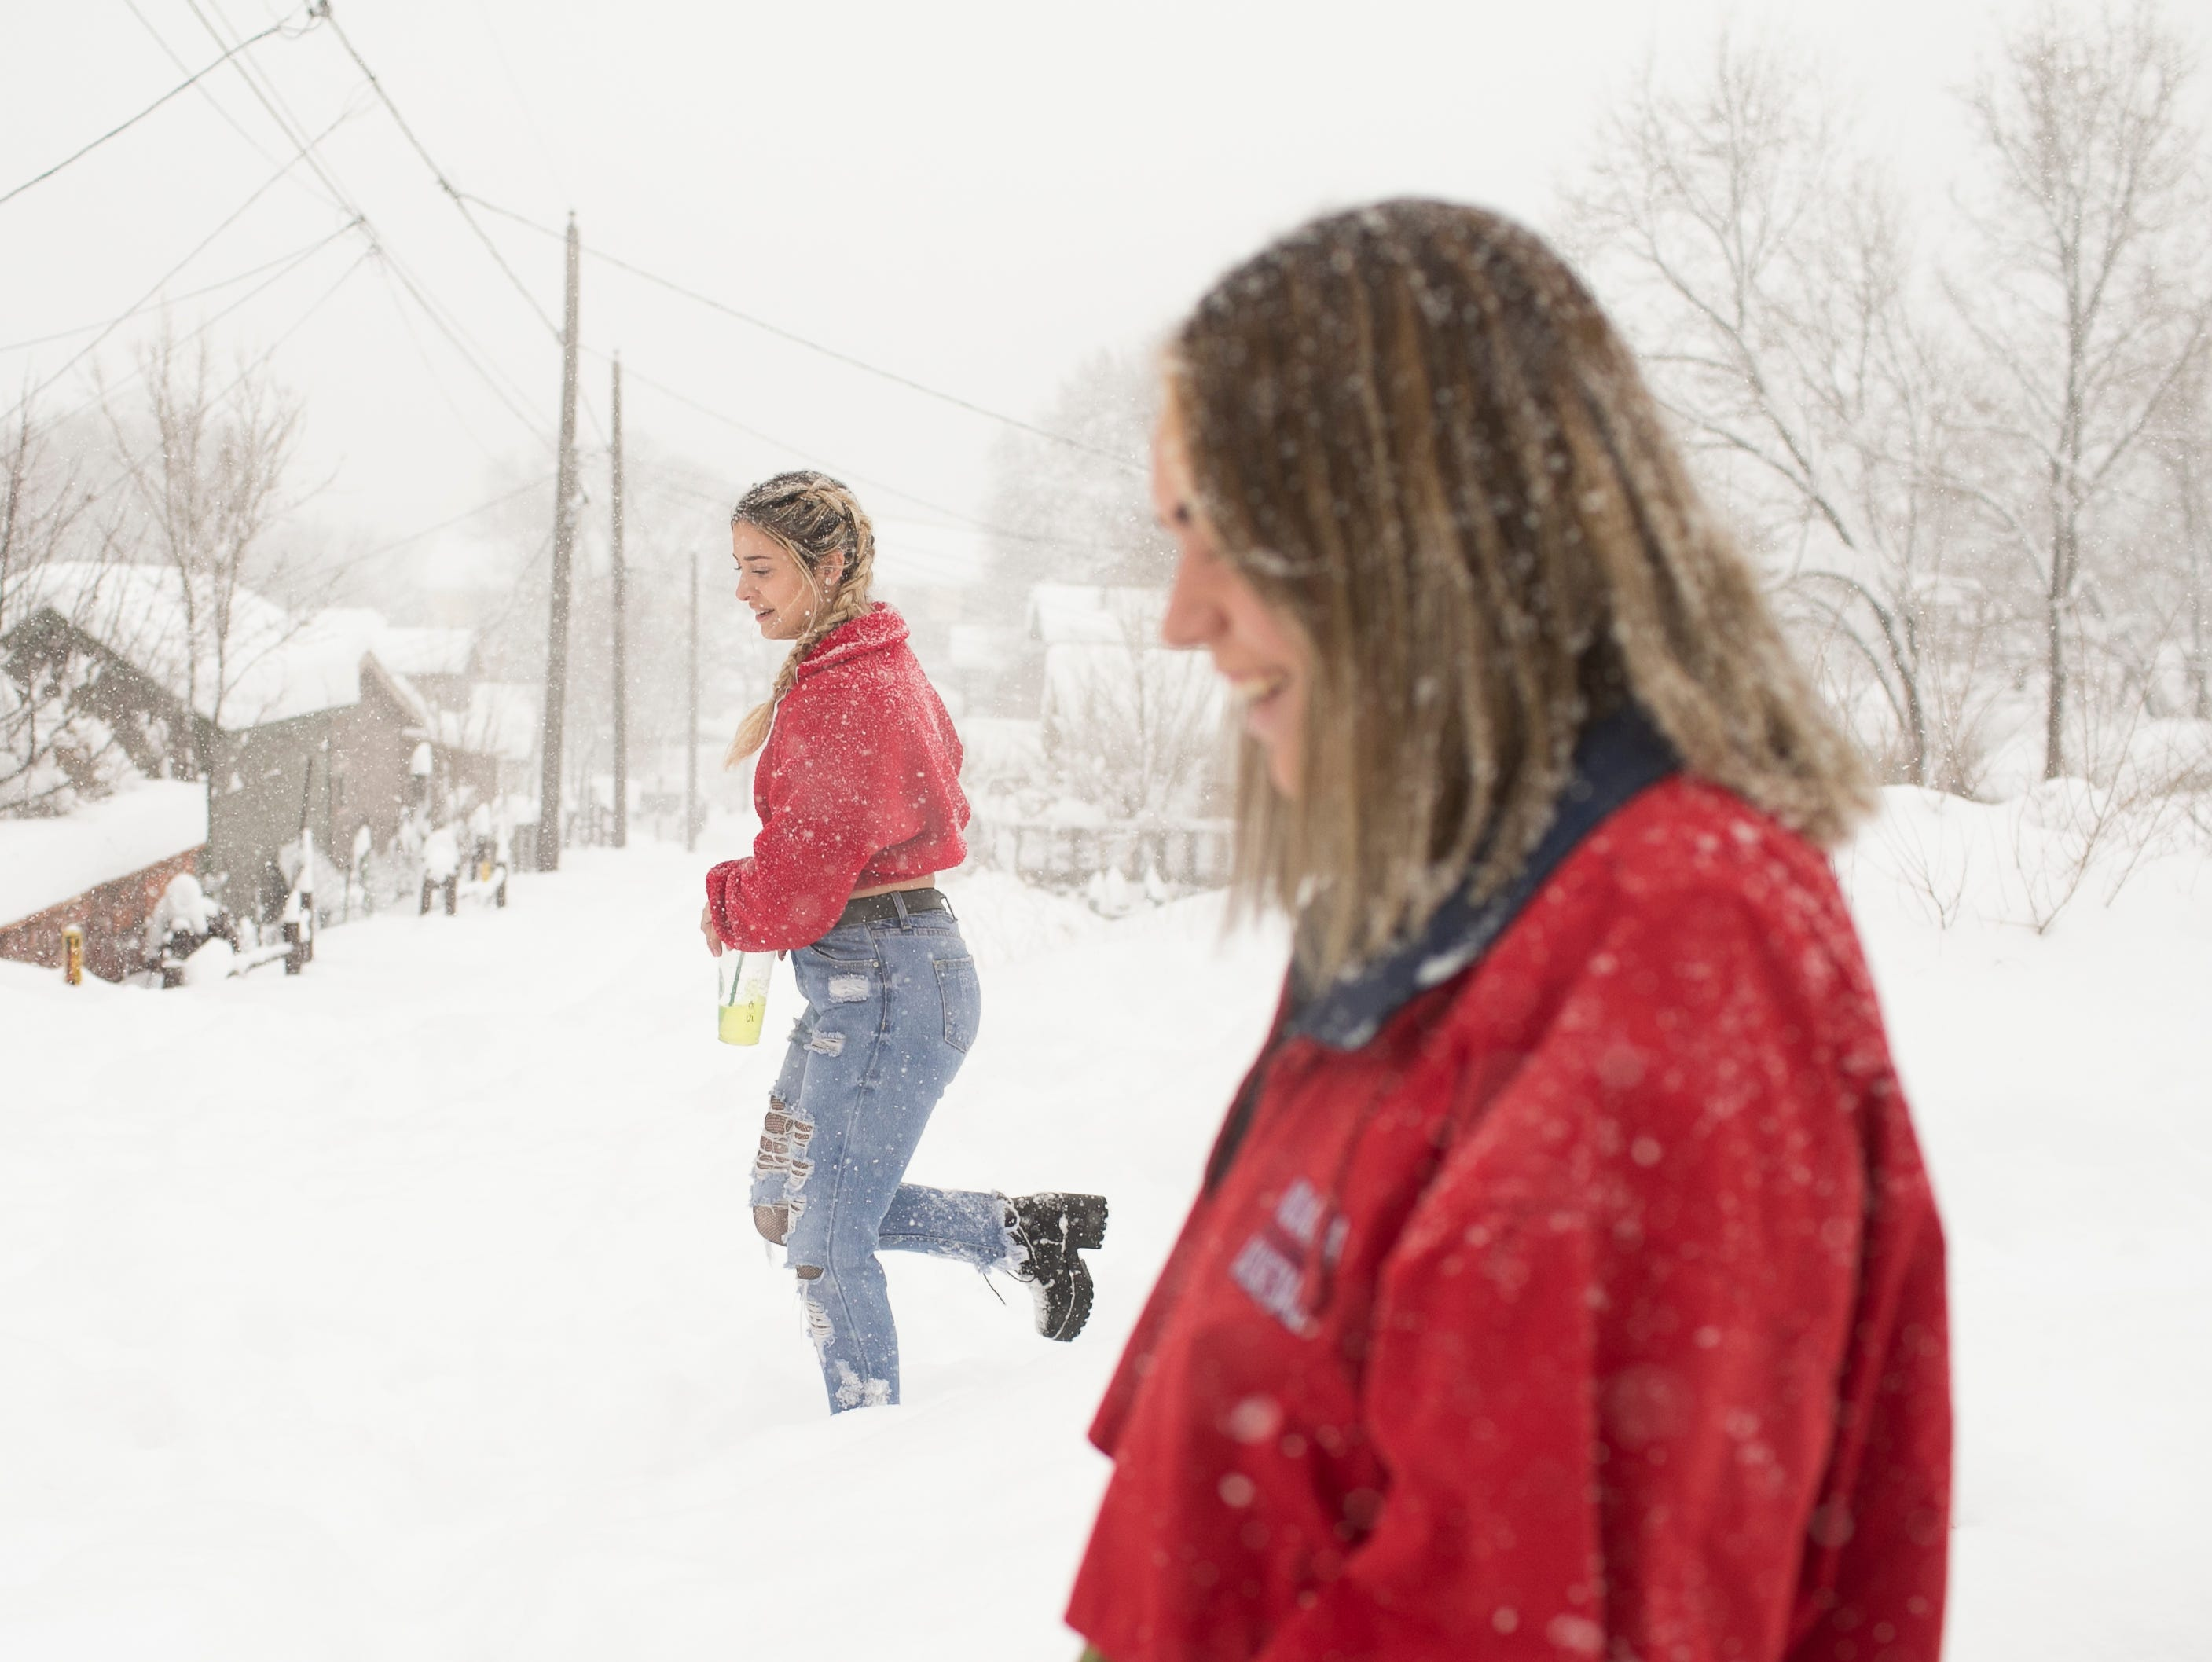 Northern Arizona University students Sierra Nider (left) and Caitlin Callison (right) walk through the snow in Flagstaff on Feb. 21, 2019. A storm was expected to bring 20-30 inches of snow around northern Arizona through Friday.